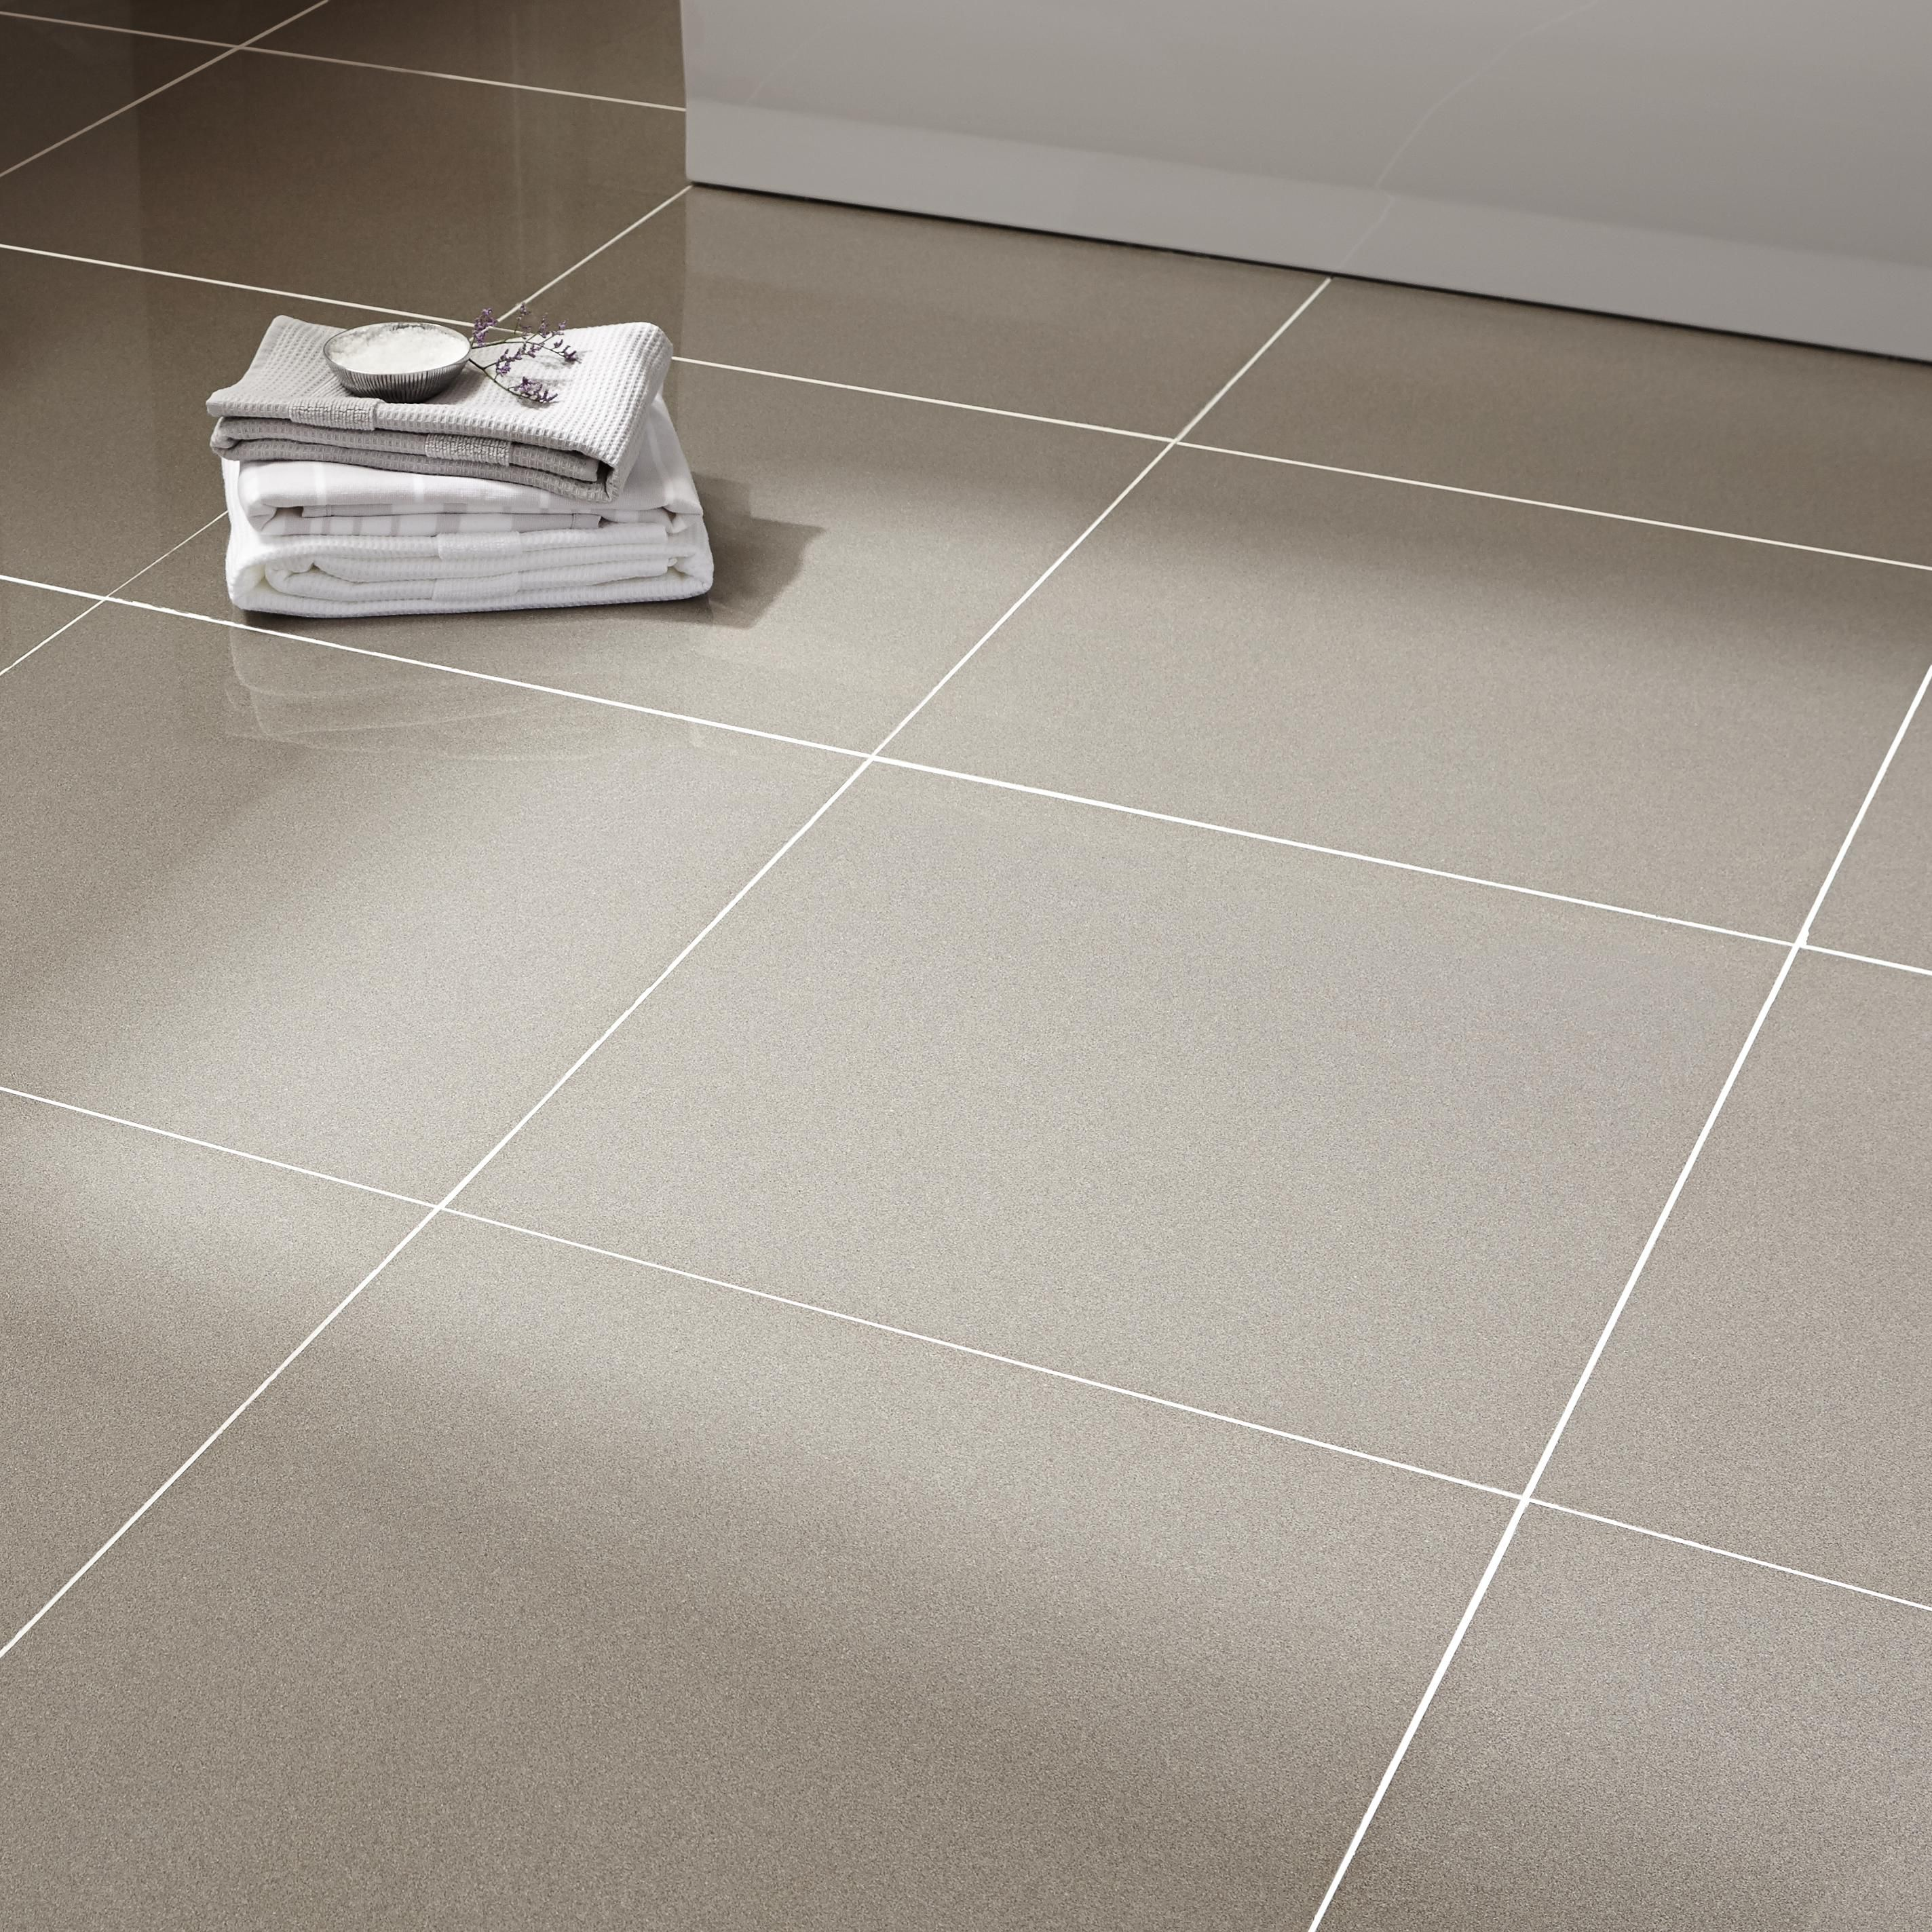 How to lay floor tiles Help Ideas DIY at BQ